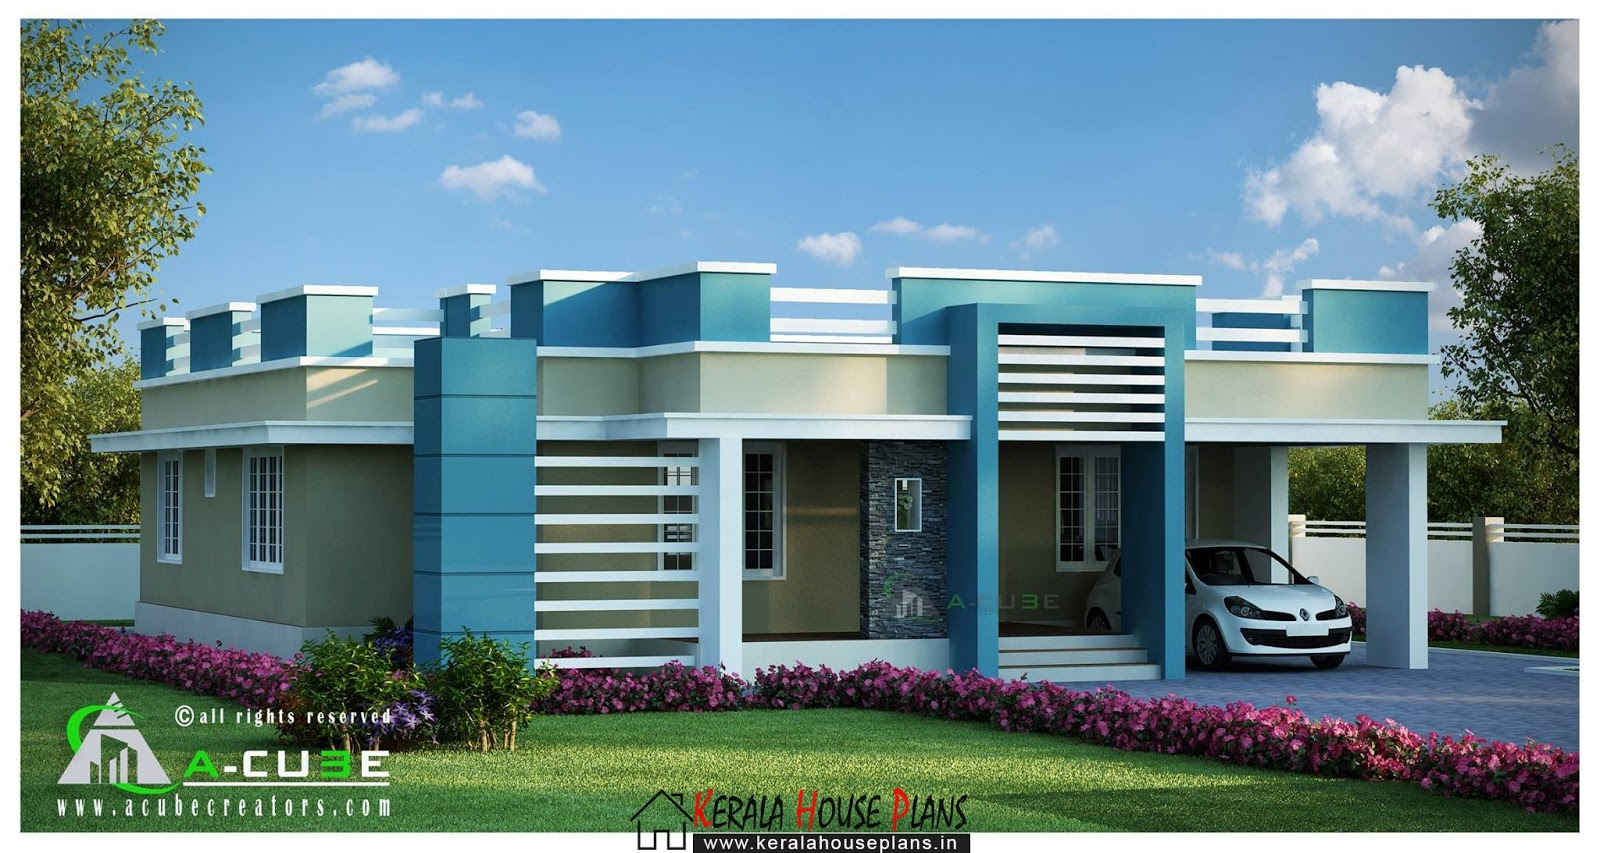 Beautiful Kerala Single Floo rContemporary House Design